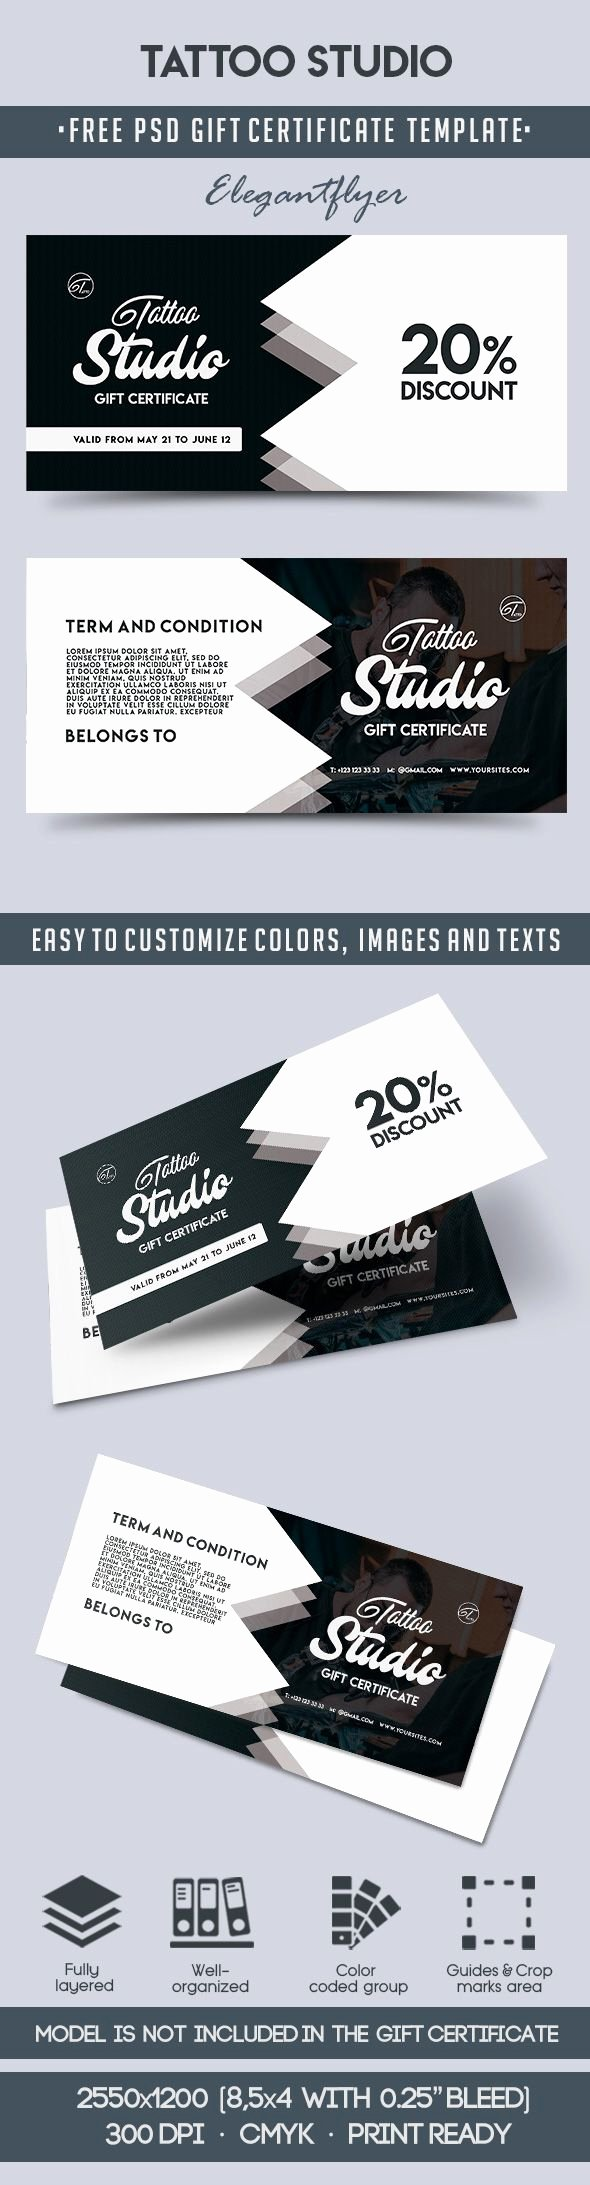 Tattoo Gift Certificate Template Awesome Tattoo Studio – Free Gift Certificate Psd Template – by